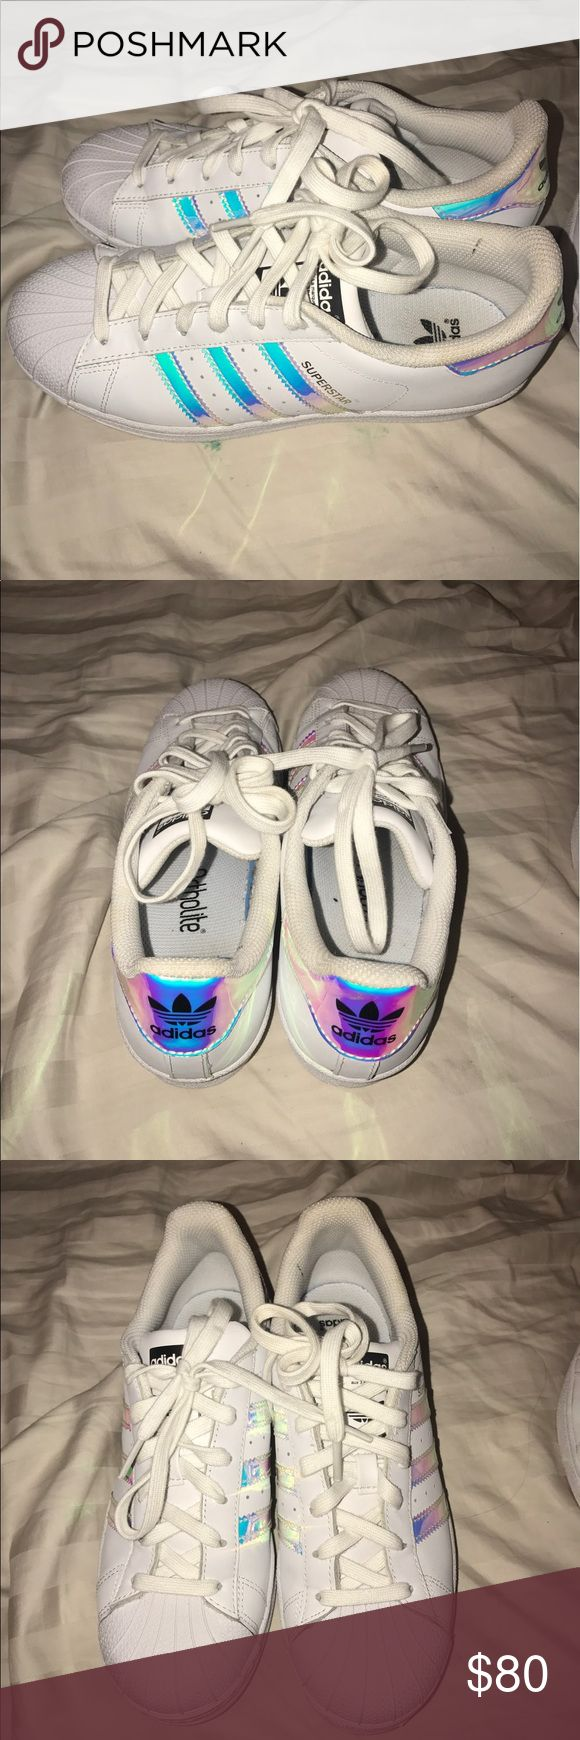 Holographic adidas superstar Selling these holographic adidas superstar's! I never wear them anymore but I know somebody else would--they're gorgeous. Barely any wear, just on the soles and that can be cleaned. These run small, US SIZE 5, but I usually wear a 6-7. MAKE AN OFFER 💗❤️❤️💗❤️❤️ adidas Shoes Sneakers